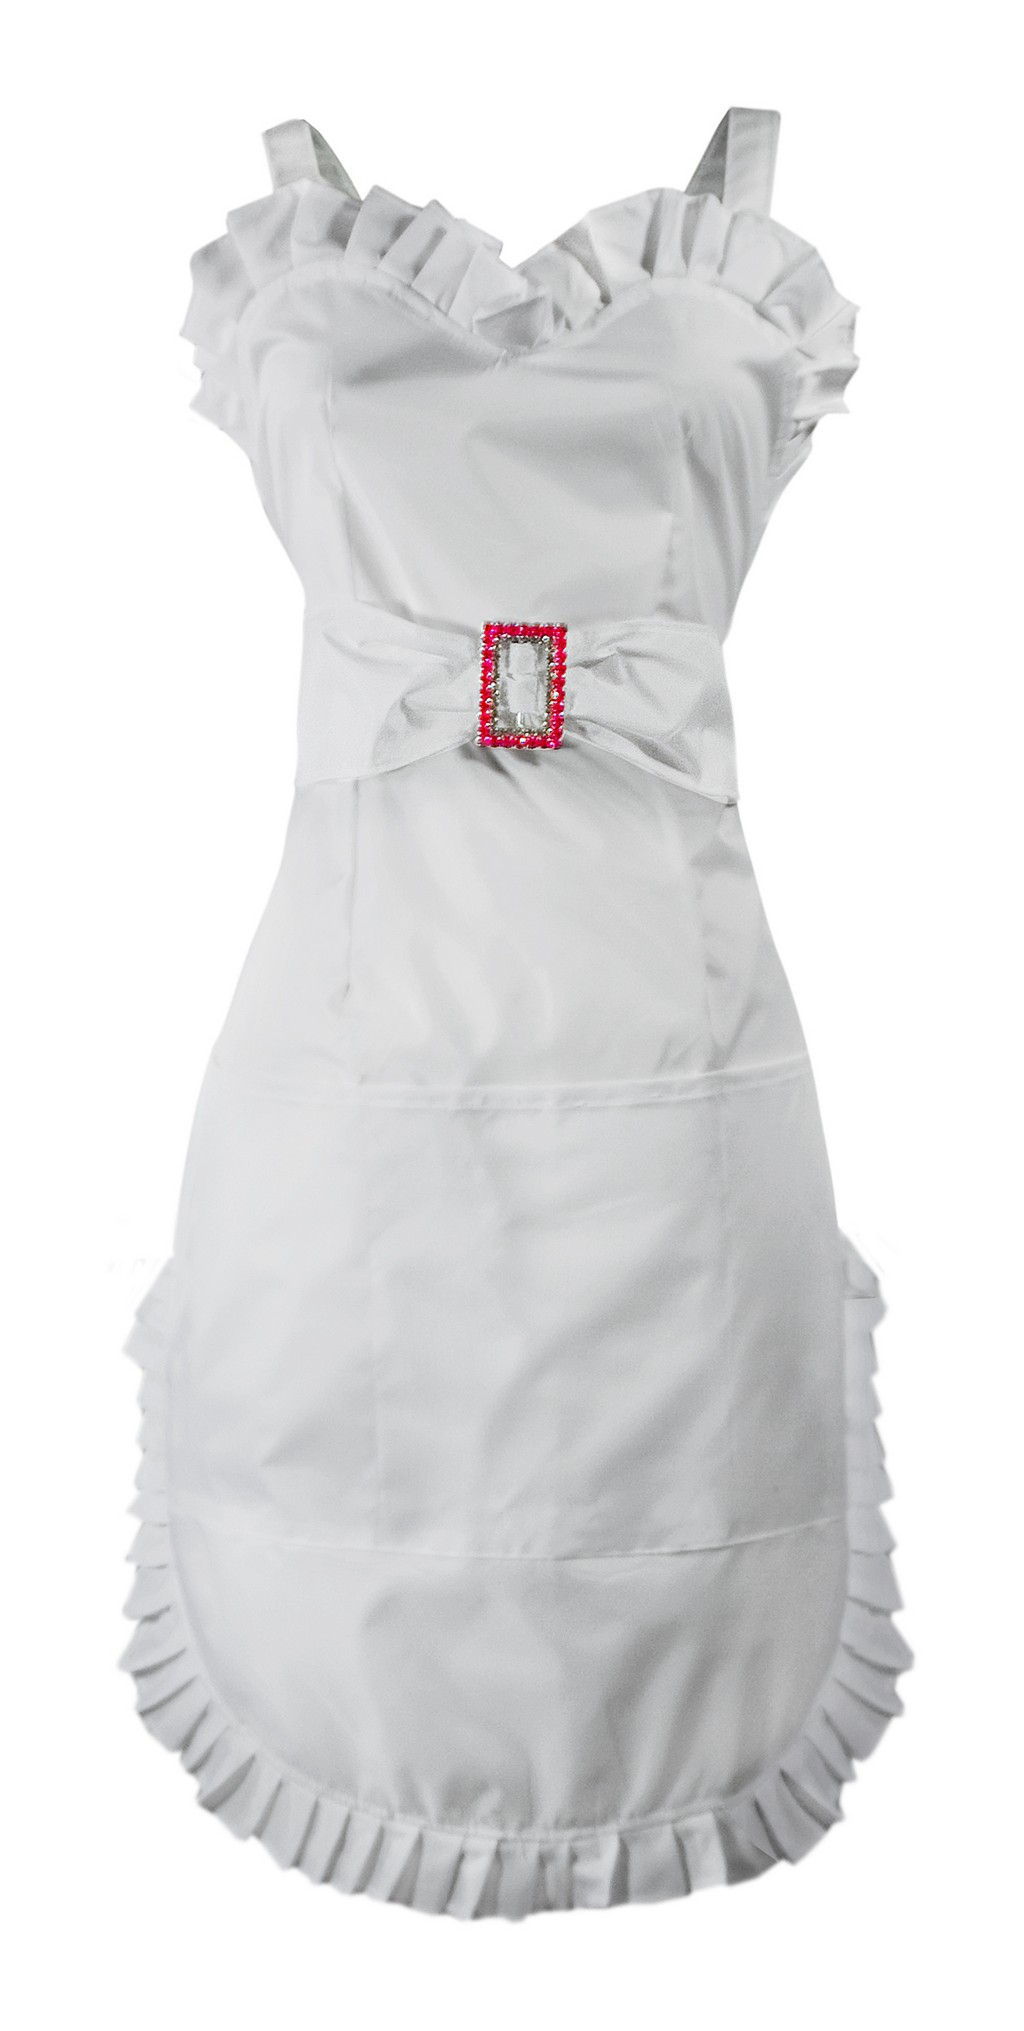 vintage aprons, apron pattern, work apron, aprons for women